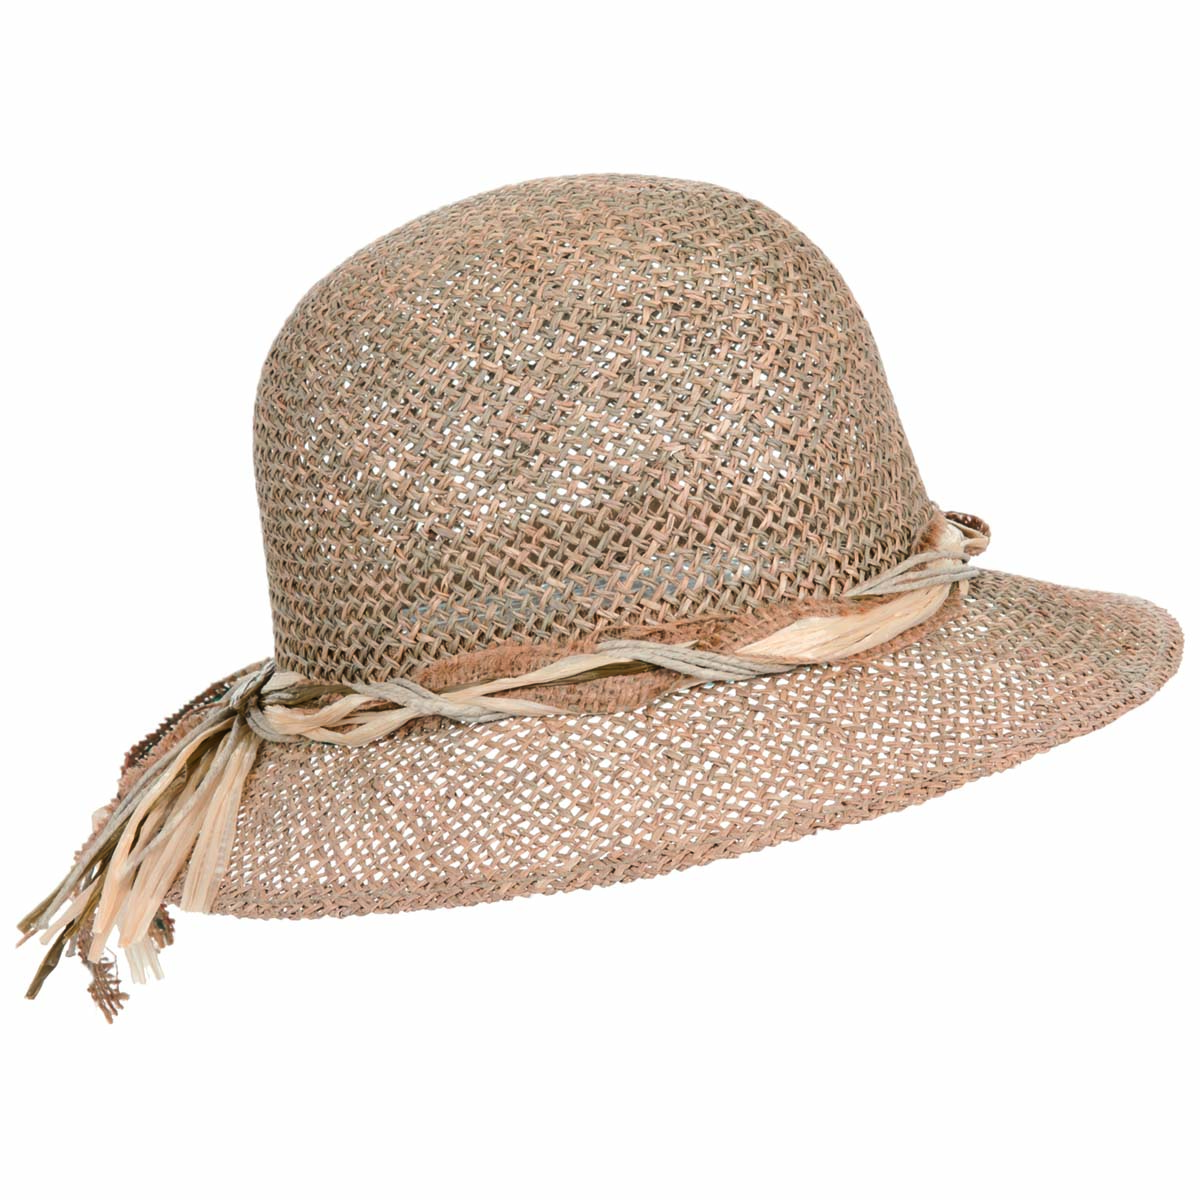 4dcab917 Straw hat for women by Hutter